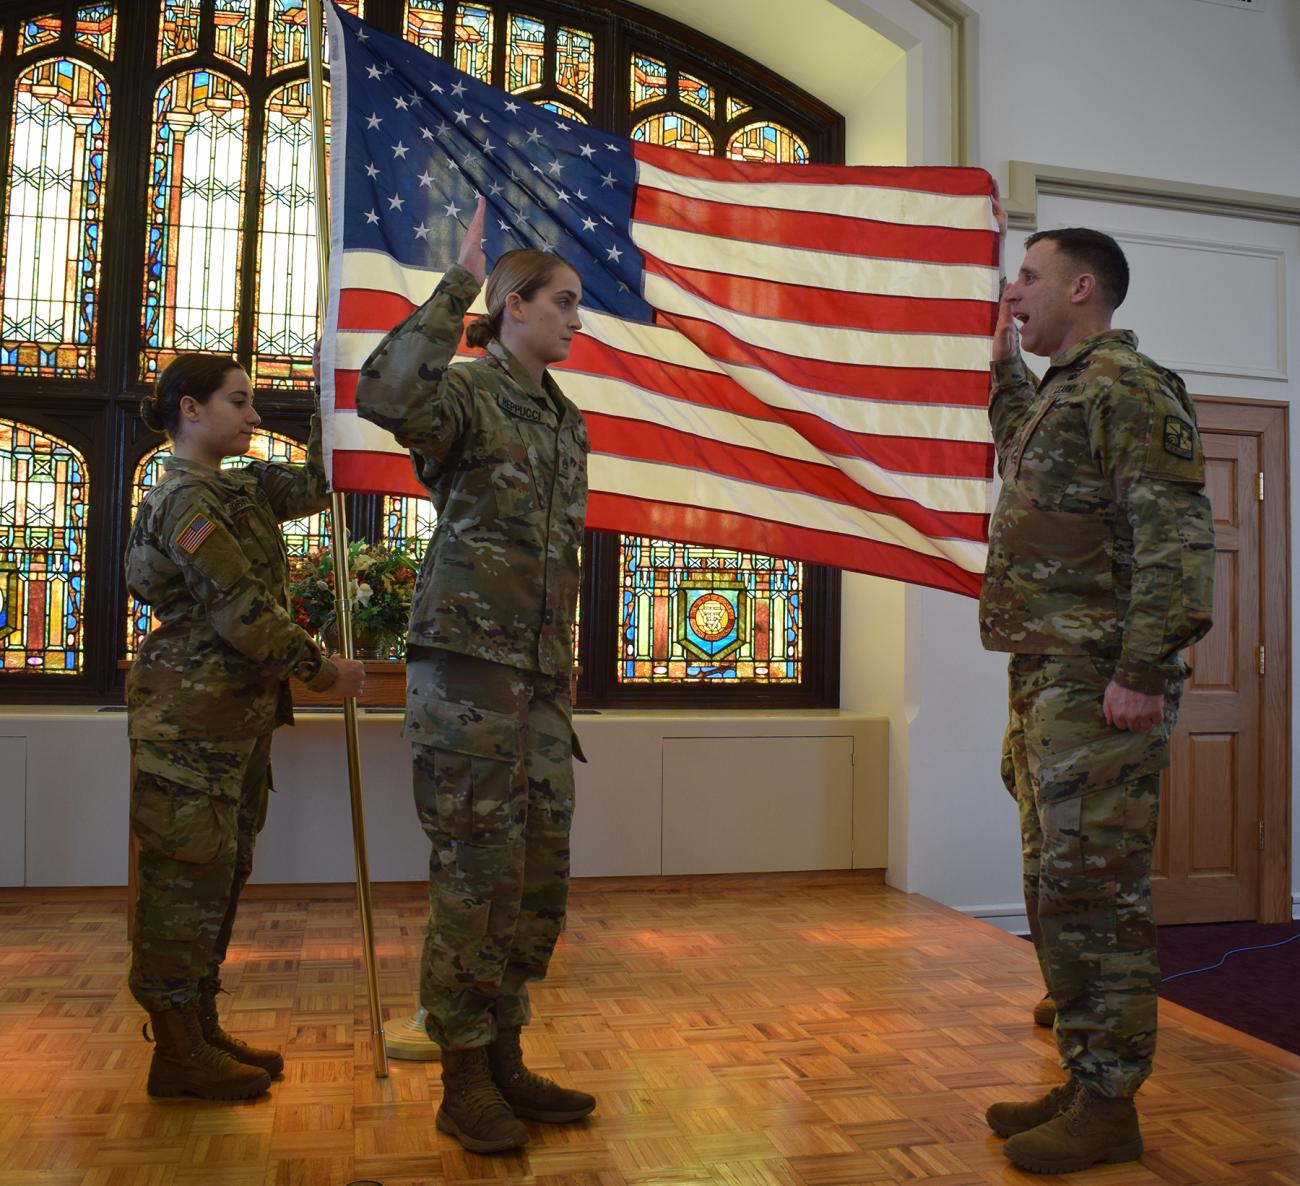 In a recent ceremony on campus recognizing the ROTC grants, Springfield College junior and ROTC scholarship recipient Madelyn Reppucci was recognized at an official ROTC signing and swearing-in ceremony in the Marsh Memorial Chapel.